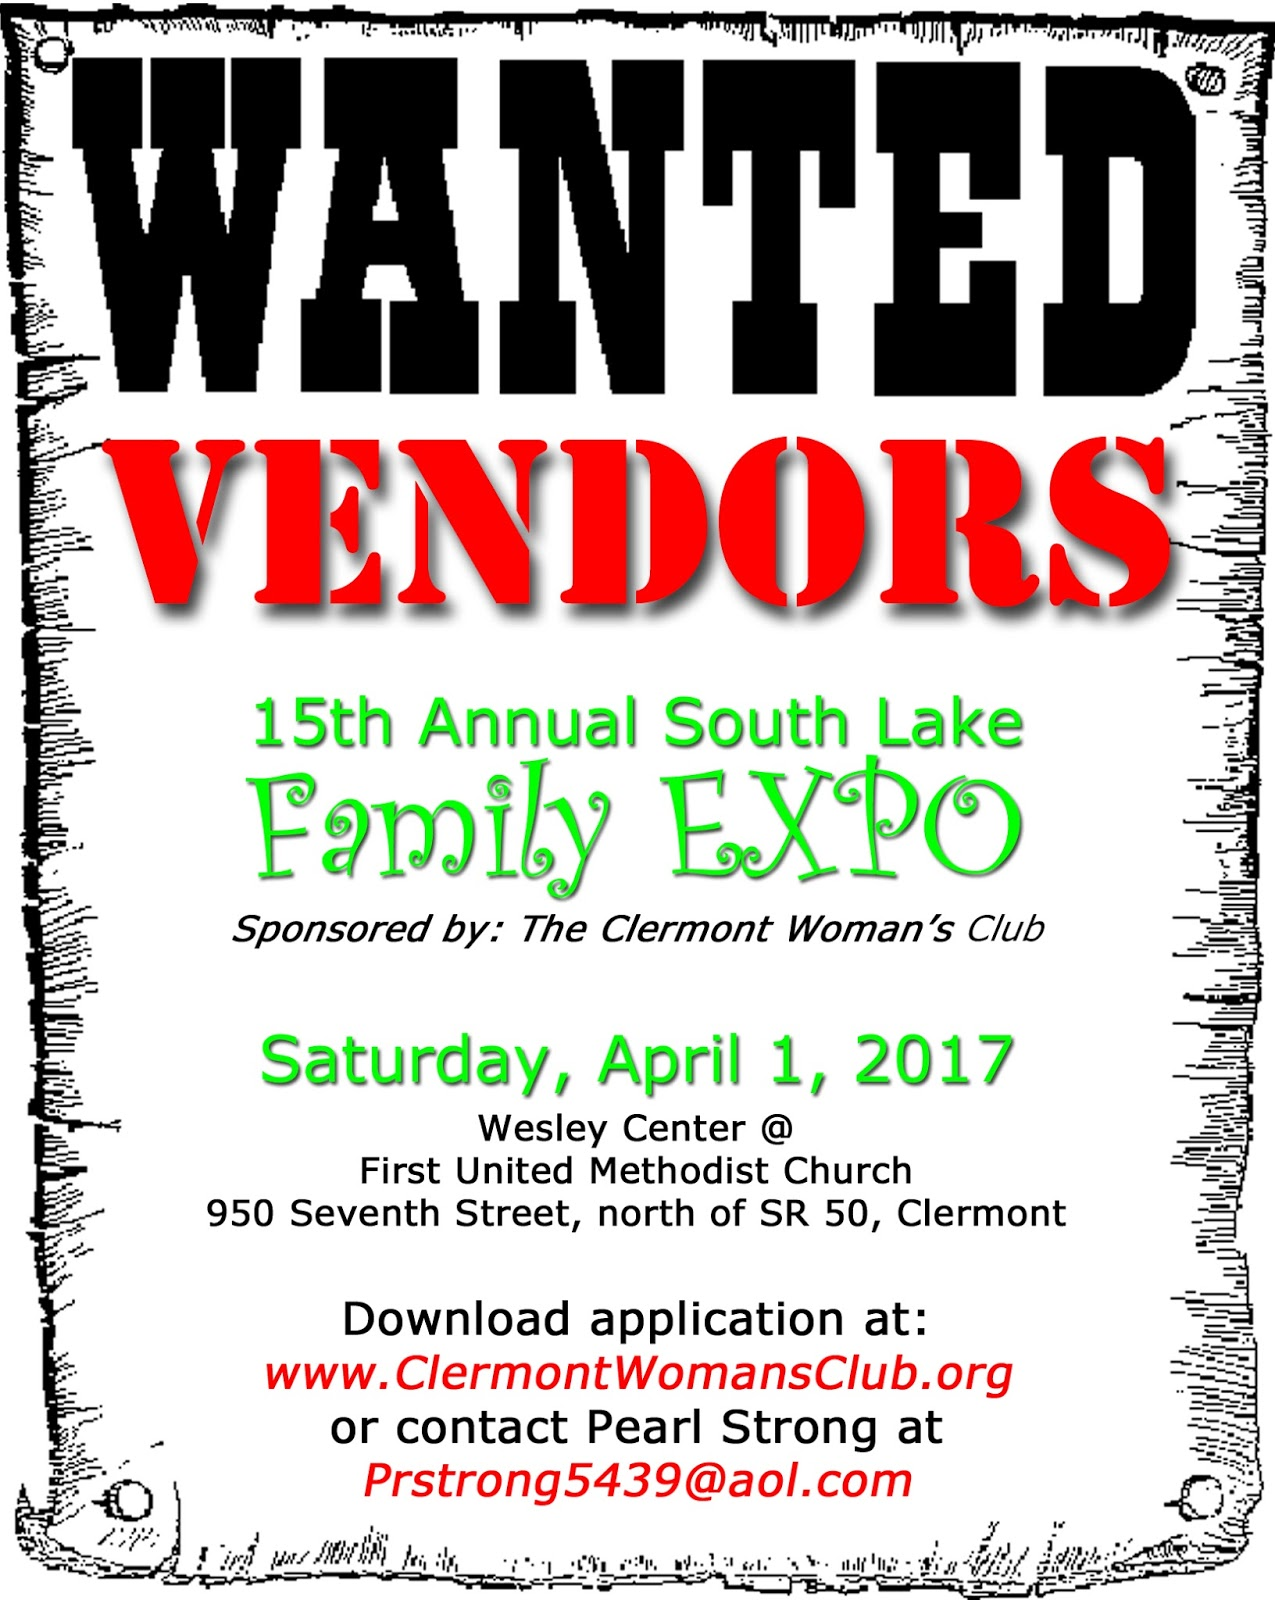 clermont woman u0026 39 s club  inc   15th annual sl family expo